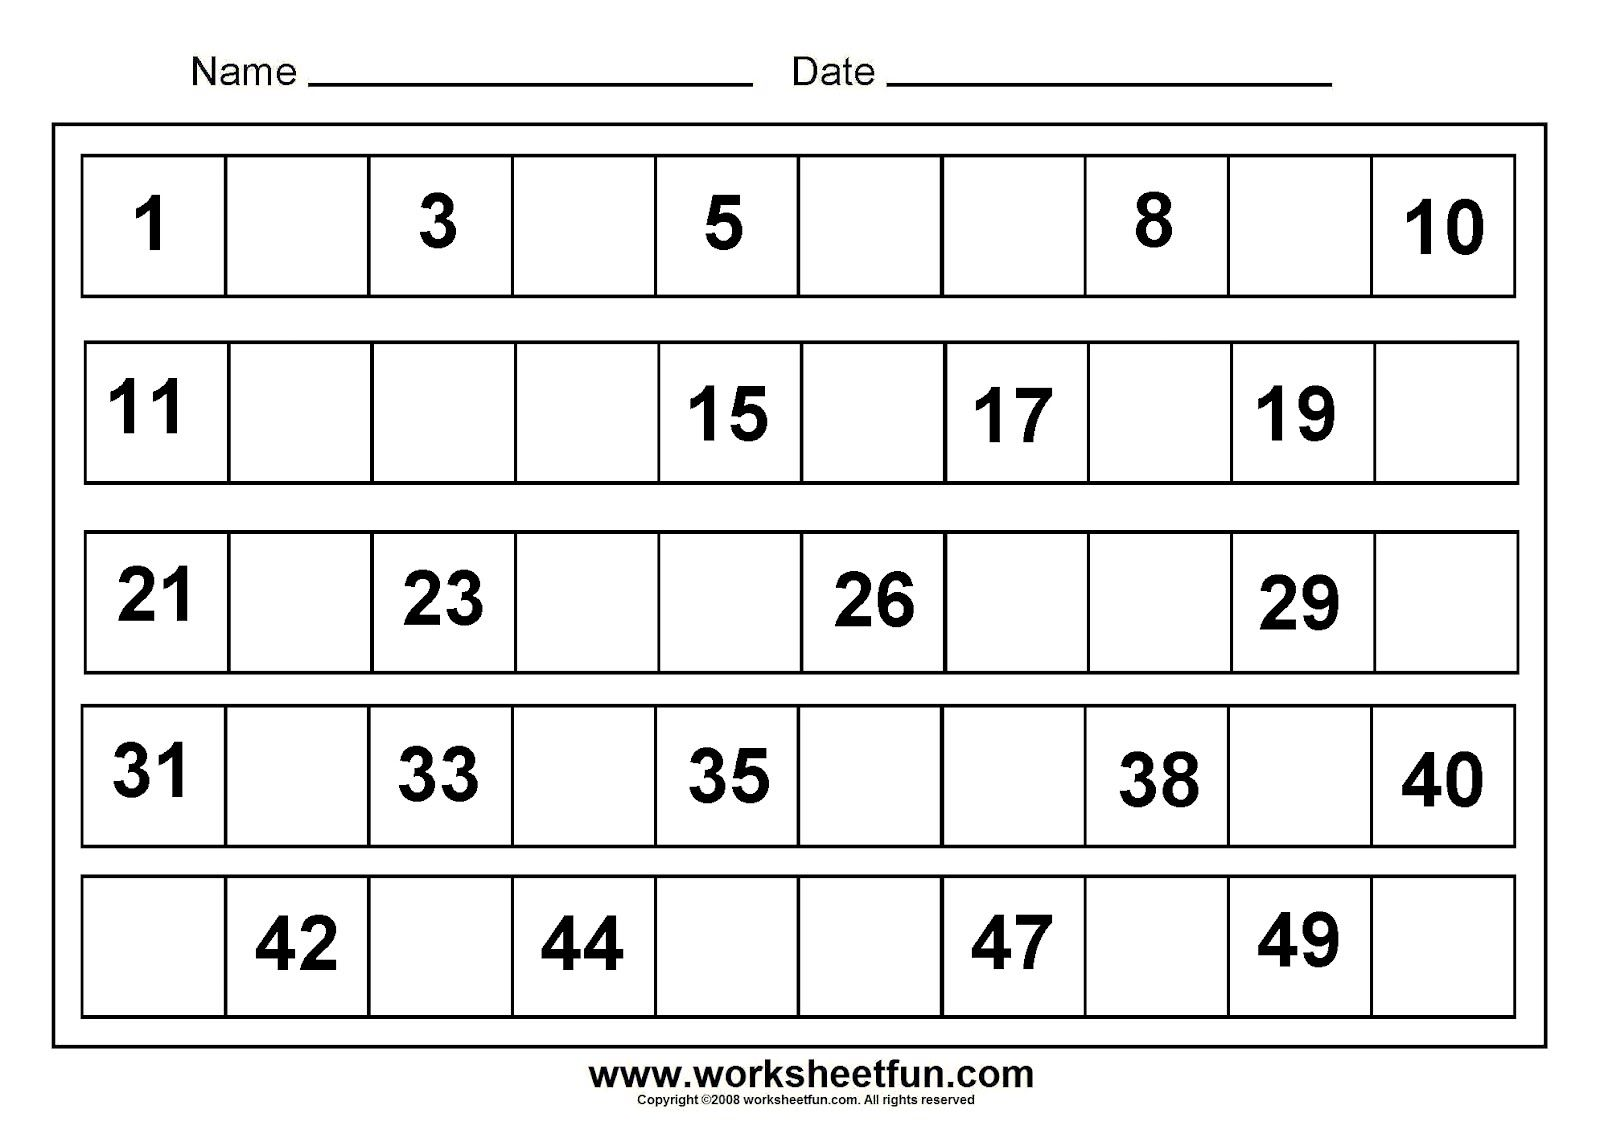 Worksheet Preschool Math Printables Free 1000 images about work sheets on pinterest math worksheets kindergarten and worksheets